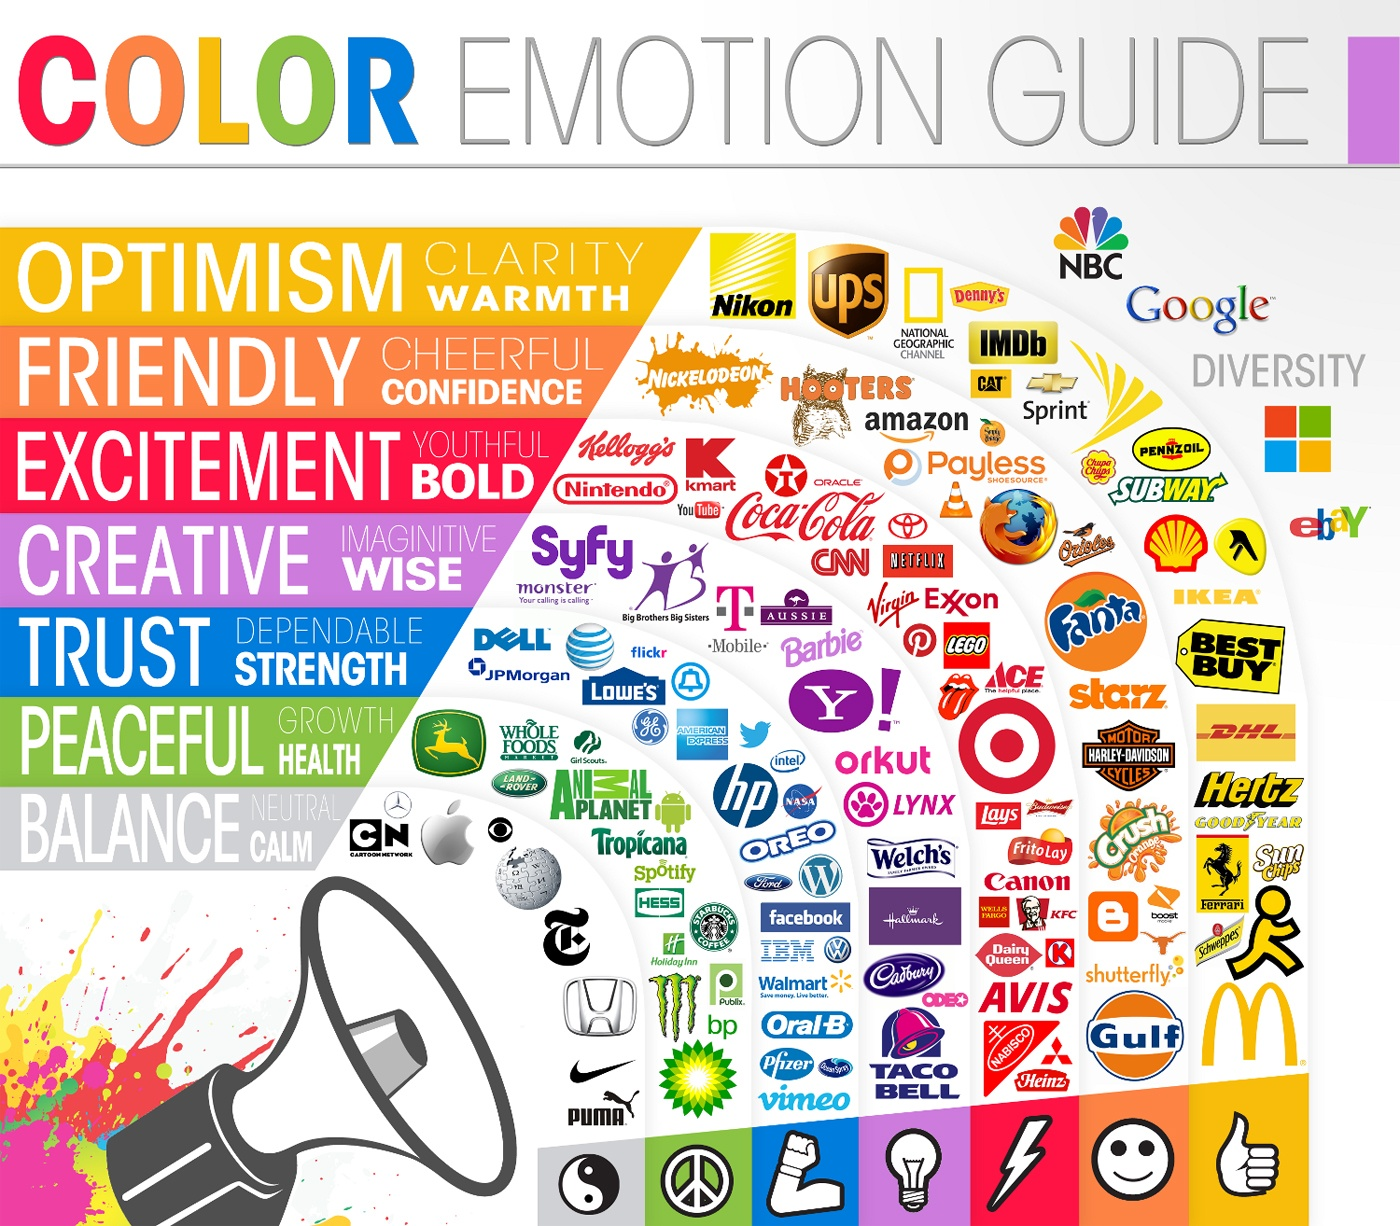 color-emotion-guide-logo-infographic.jpg